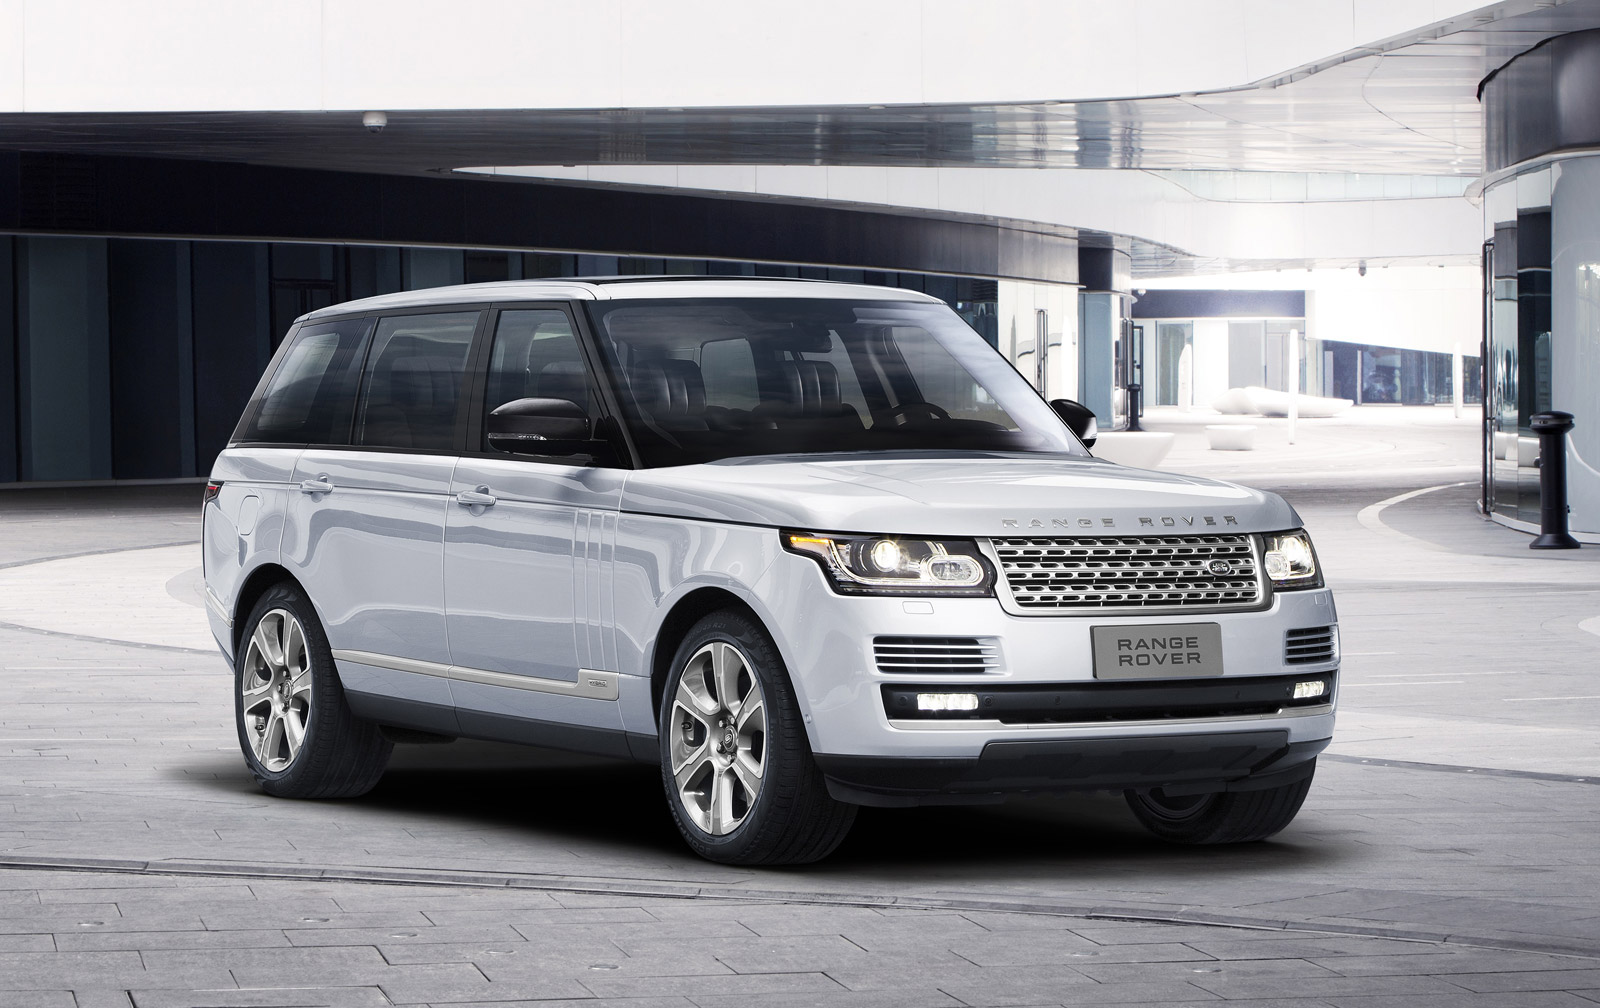 range rover long wheelbase gets hybrid option but not in u s. Black Bedroom Furniture Sets. Home Design Ideas